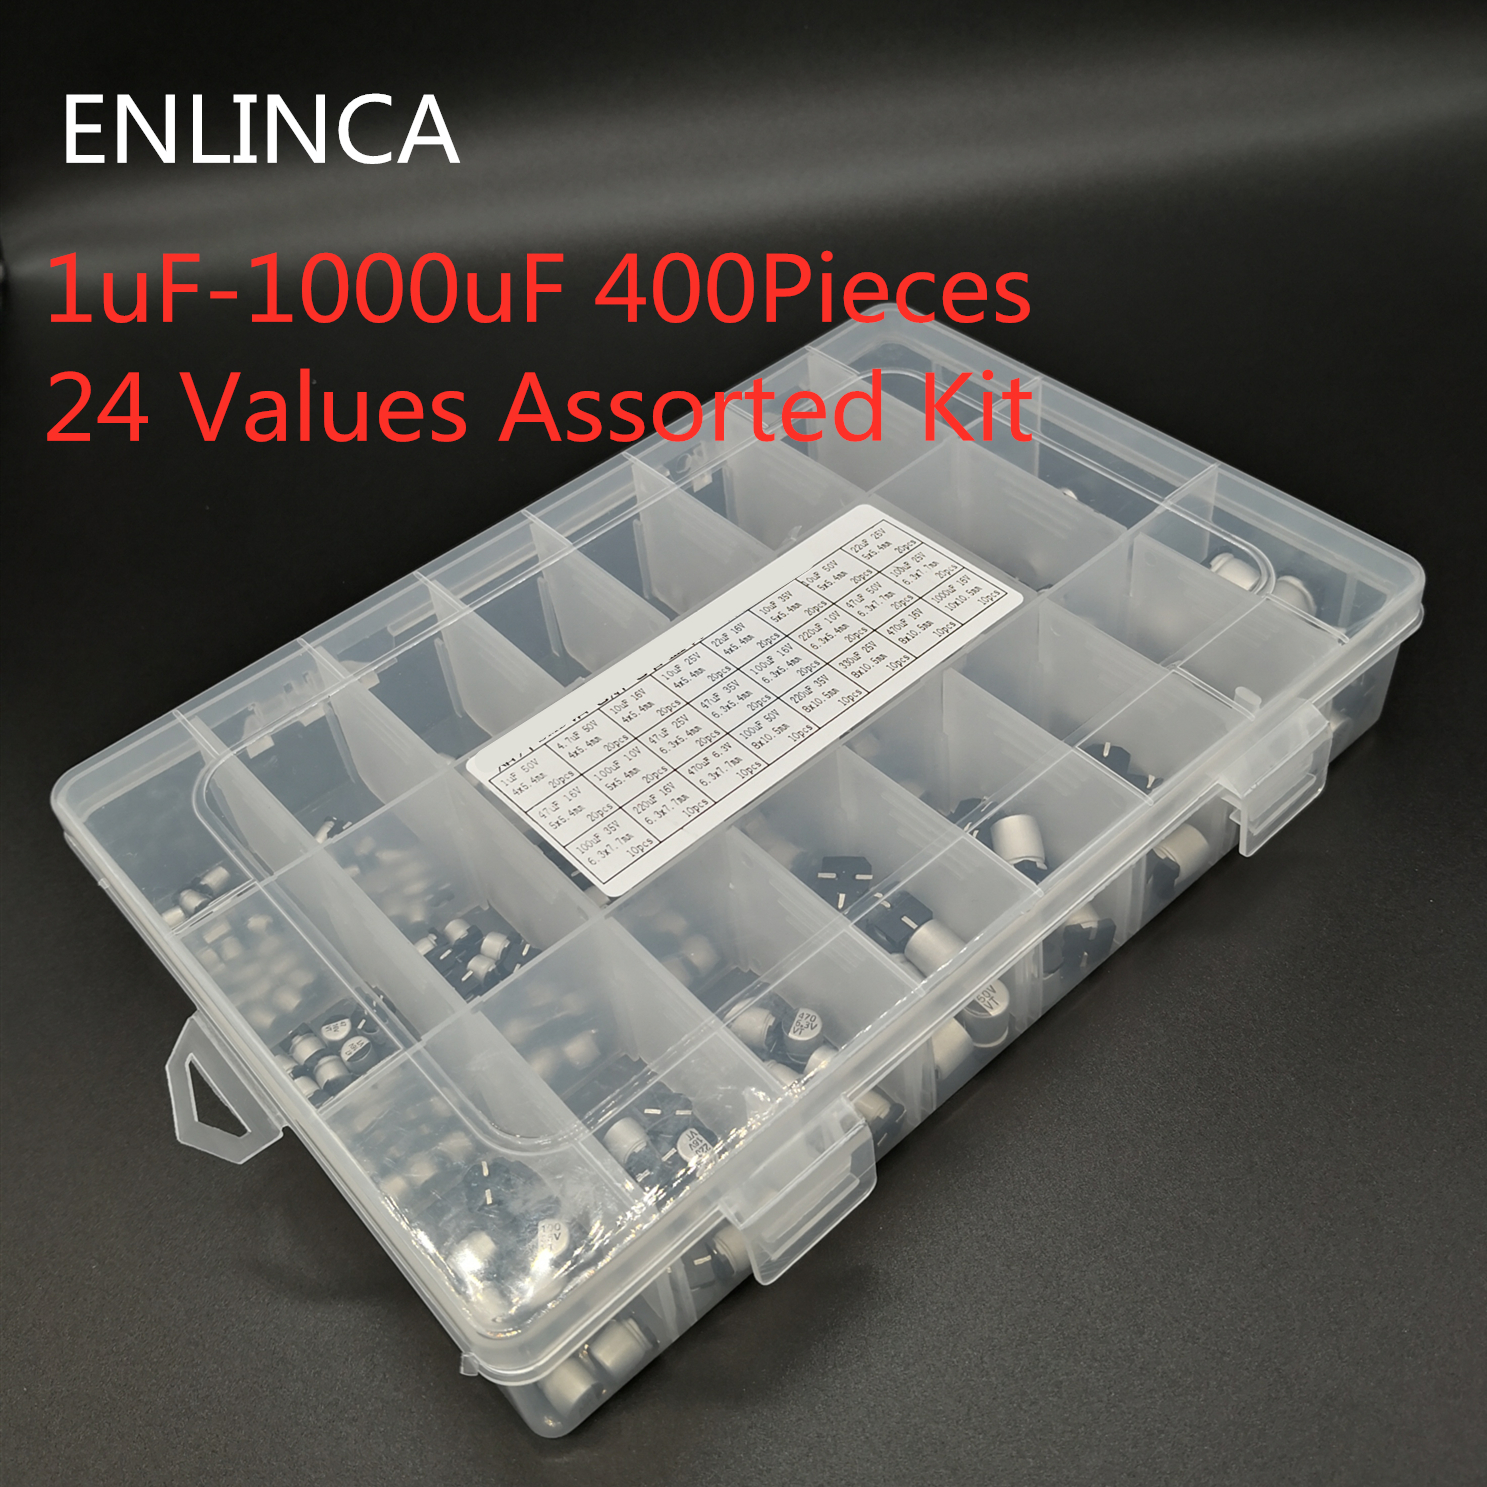 400pcs/lot 1uF-1000uF 24 Values Assorted Kit Electrolytic Capacitor SMD Aluminum Electrolytic Capacitor